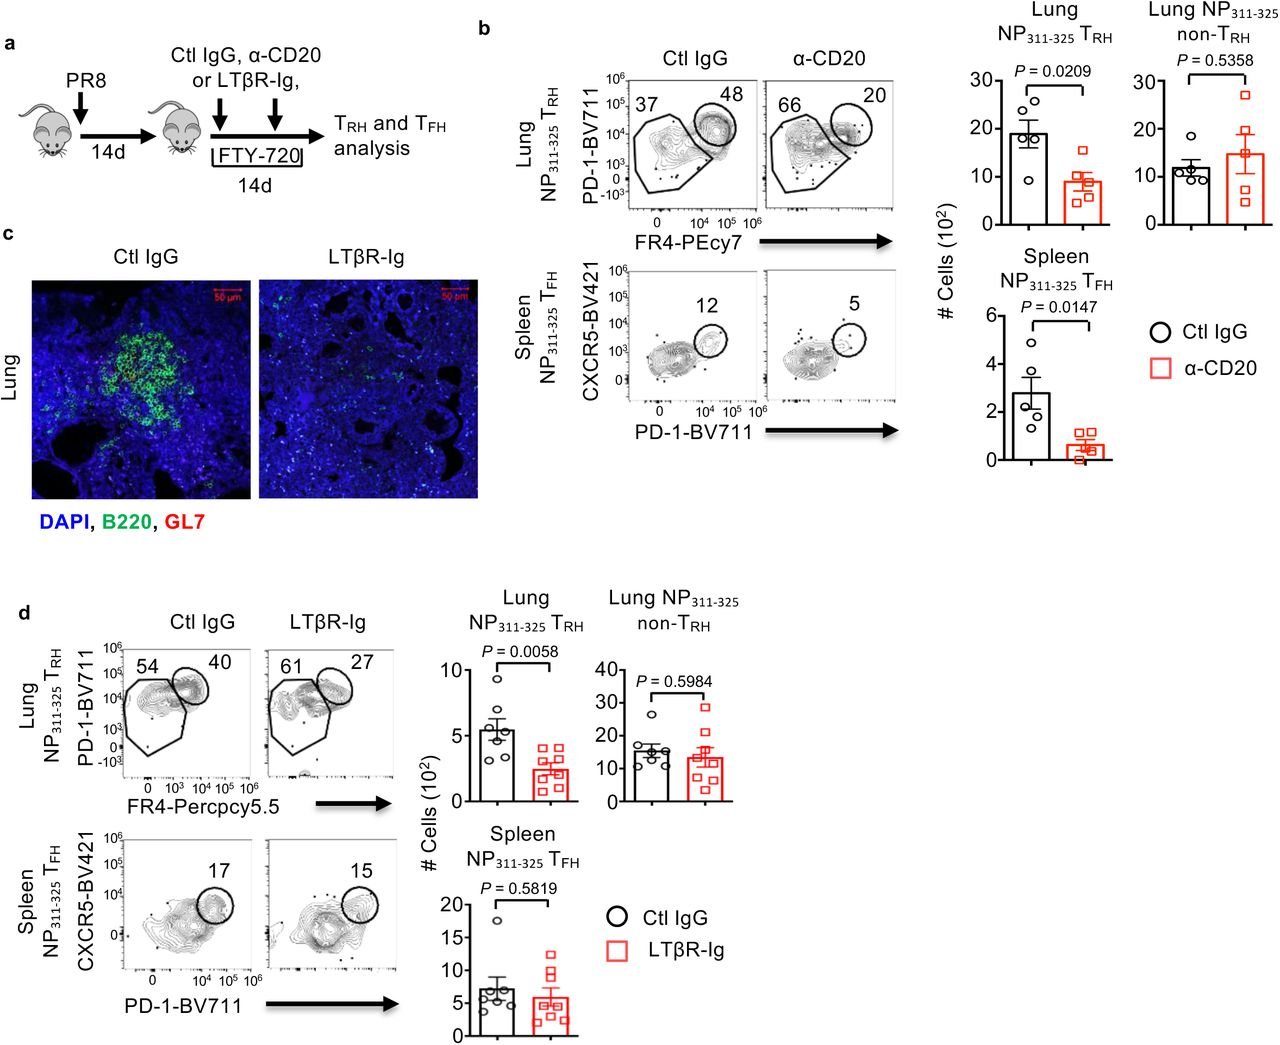 Optimal T RH formation requires lung B cells and iBALT formation WT ( a-d ) mice were infected with PR8 and treated with ctl IgG, α-CD20 ( b ) or LTβR-Ig ( c and d ) (weekly starting at 14 d.p.i.) in the presence of daily injection of FTY-720 (13-27 d.p.i.). a , Experimental scheme. b and d , Representative dot plot and cell numbers of influenza-specific NP 311-325 lung T RH, lung non-T RH or splenic T FH cells. c , Representative image from lung tissue section stained with B220/GL-7 following ctl IgG or LTβR-Ig treatment. In c , the representative image was from at least two independent experiments (3-4 mice per group). In b , representative data were from at least two independent experiments (4-5 mice per group). In d , data were pooled from two independent experiments (3-4 mice per group). P values were calculated by unpaired two-tailed Student's t-test.